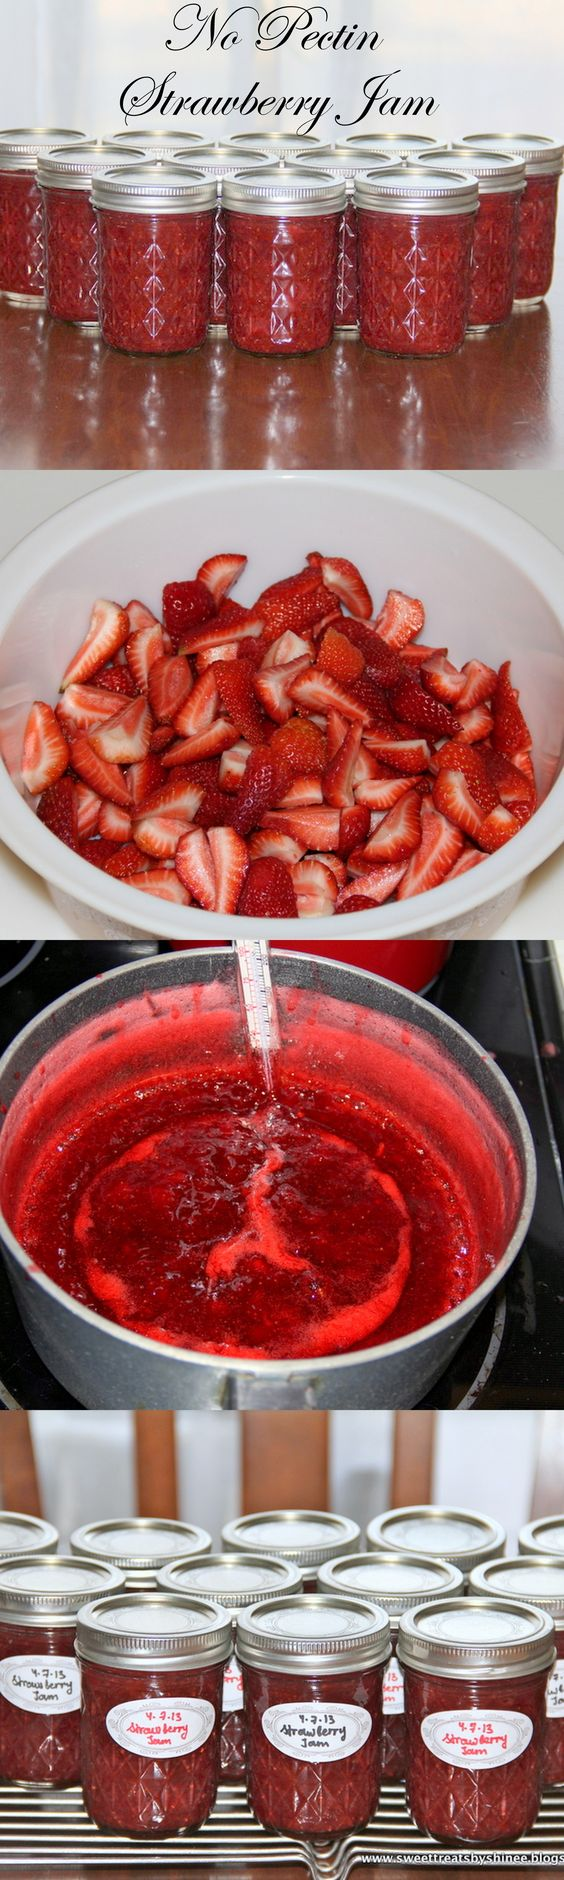 Easy strawberry jam no pectin recipe strawberry jam for Pectine cuisine